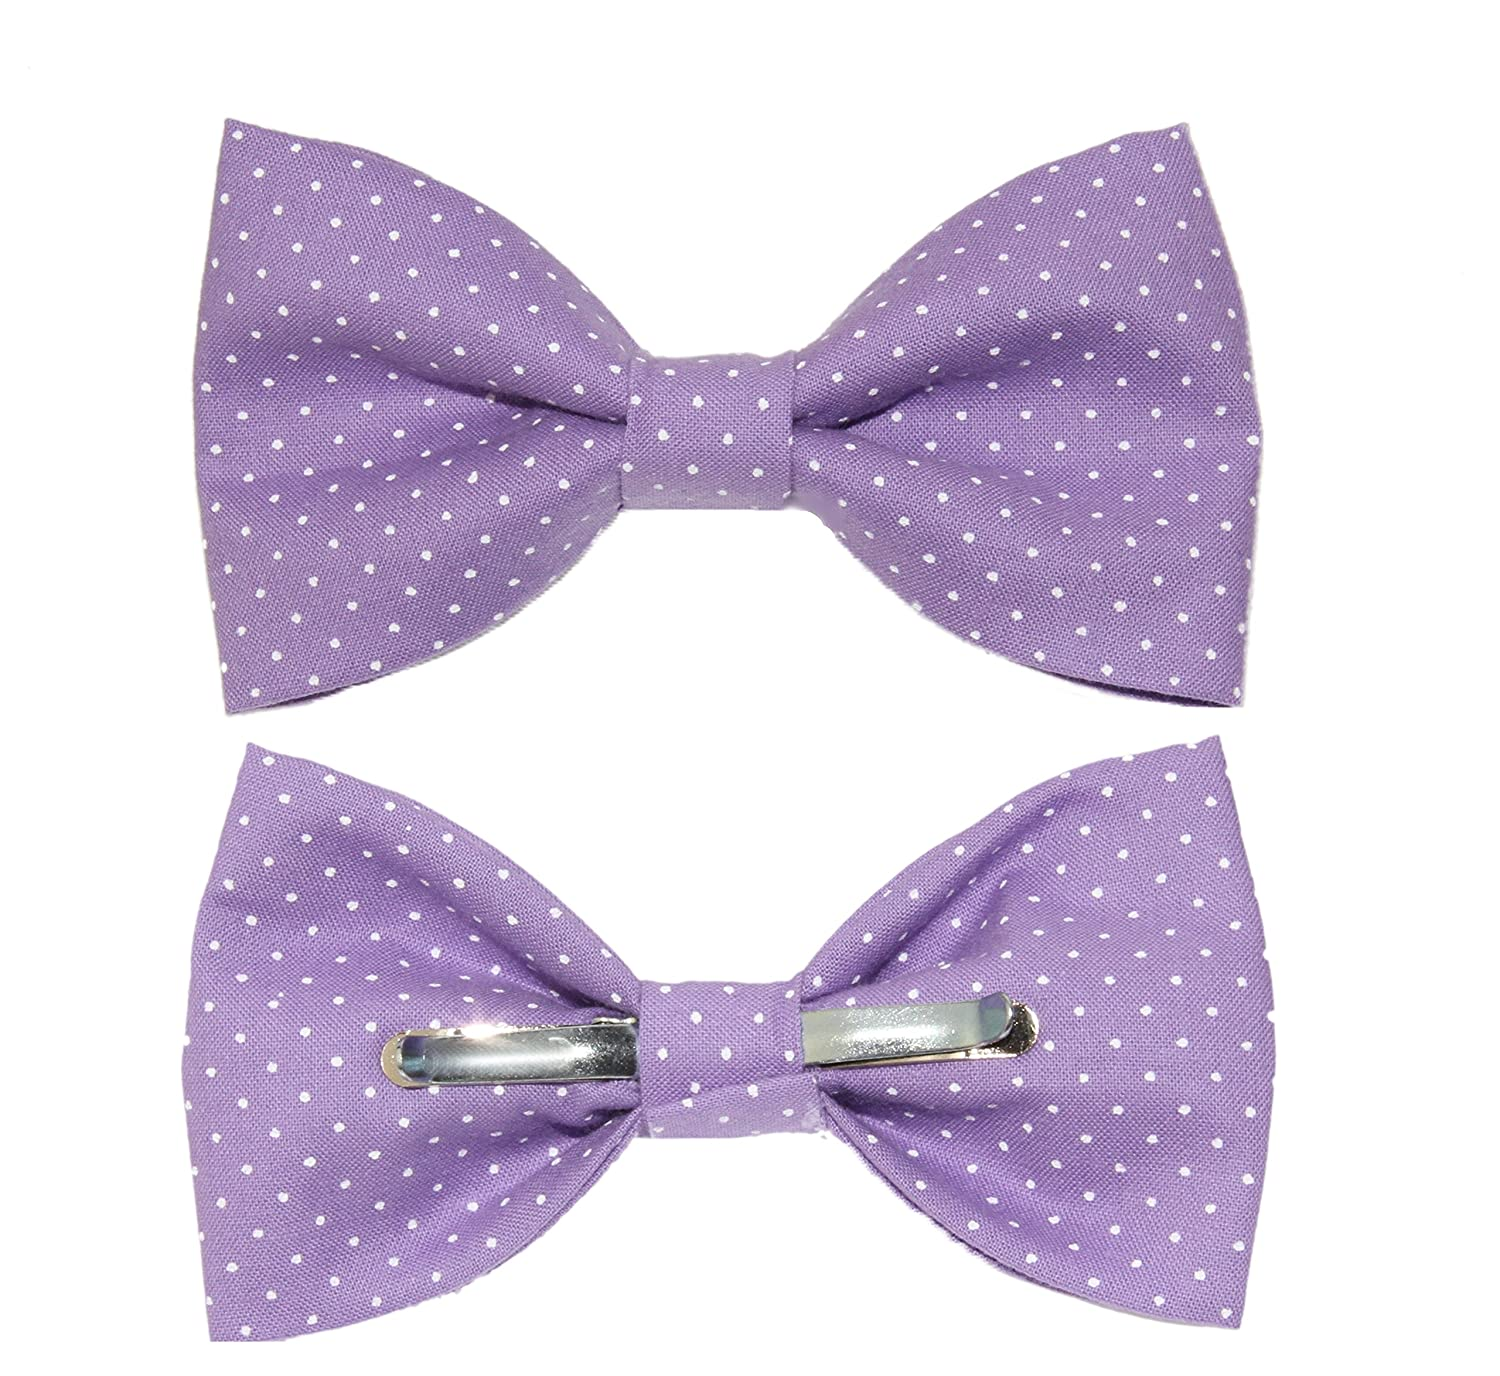 67a25a33554f Men's Purple With Small White Dots Clip On Cotton Bow Tie Bowtie by  amy2004marie at Amazon Men's Clothing store: